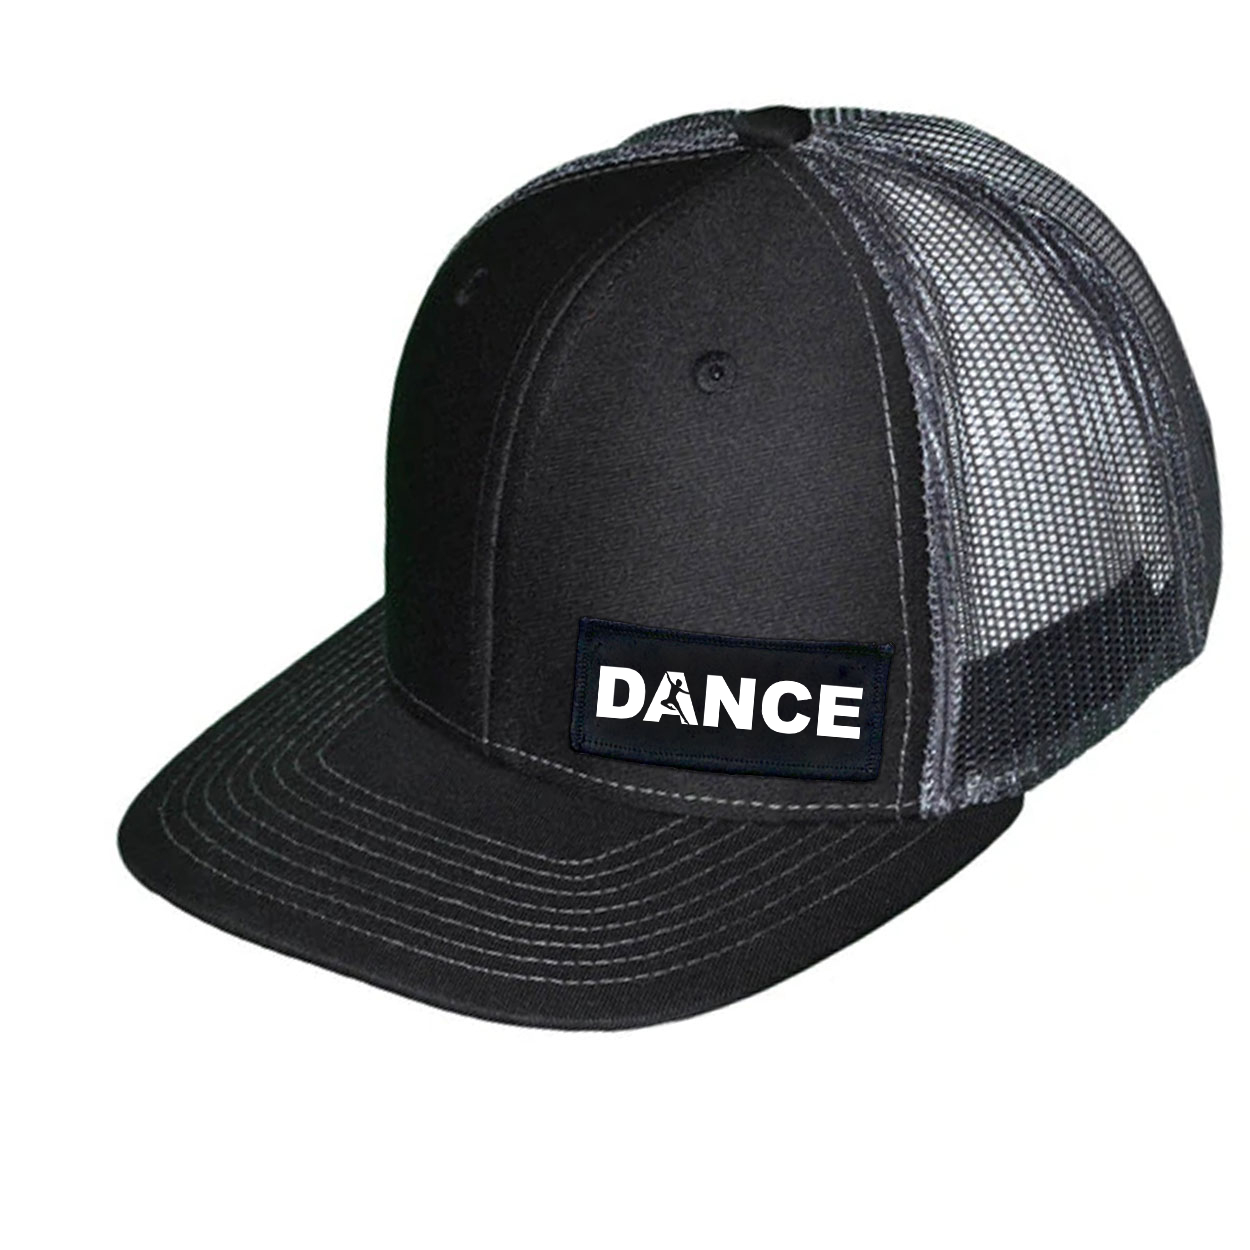 Dance Silhouette Logo Night Out Woven Patch Snapback Trucker Hat Black/Dark Gray (White Logo)